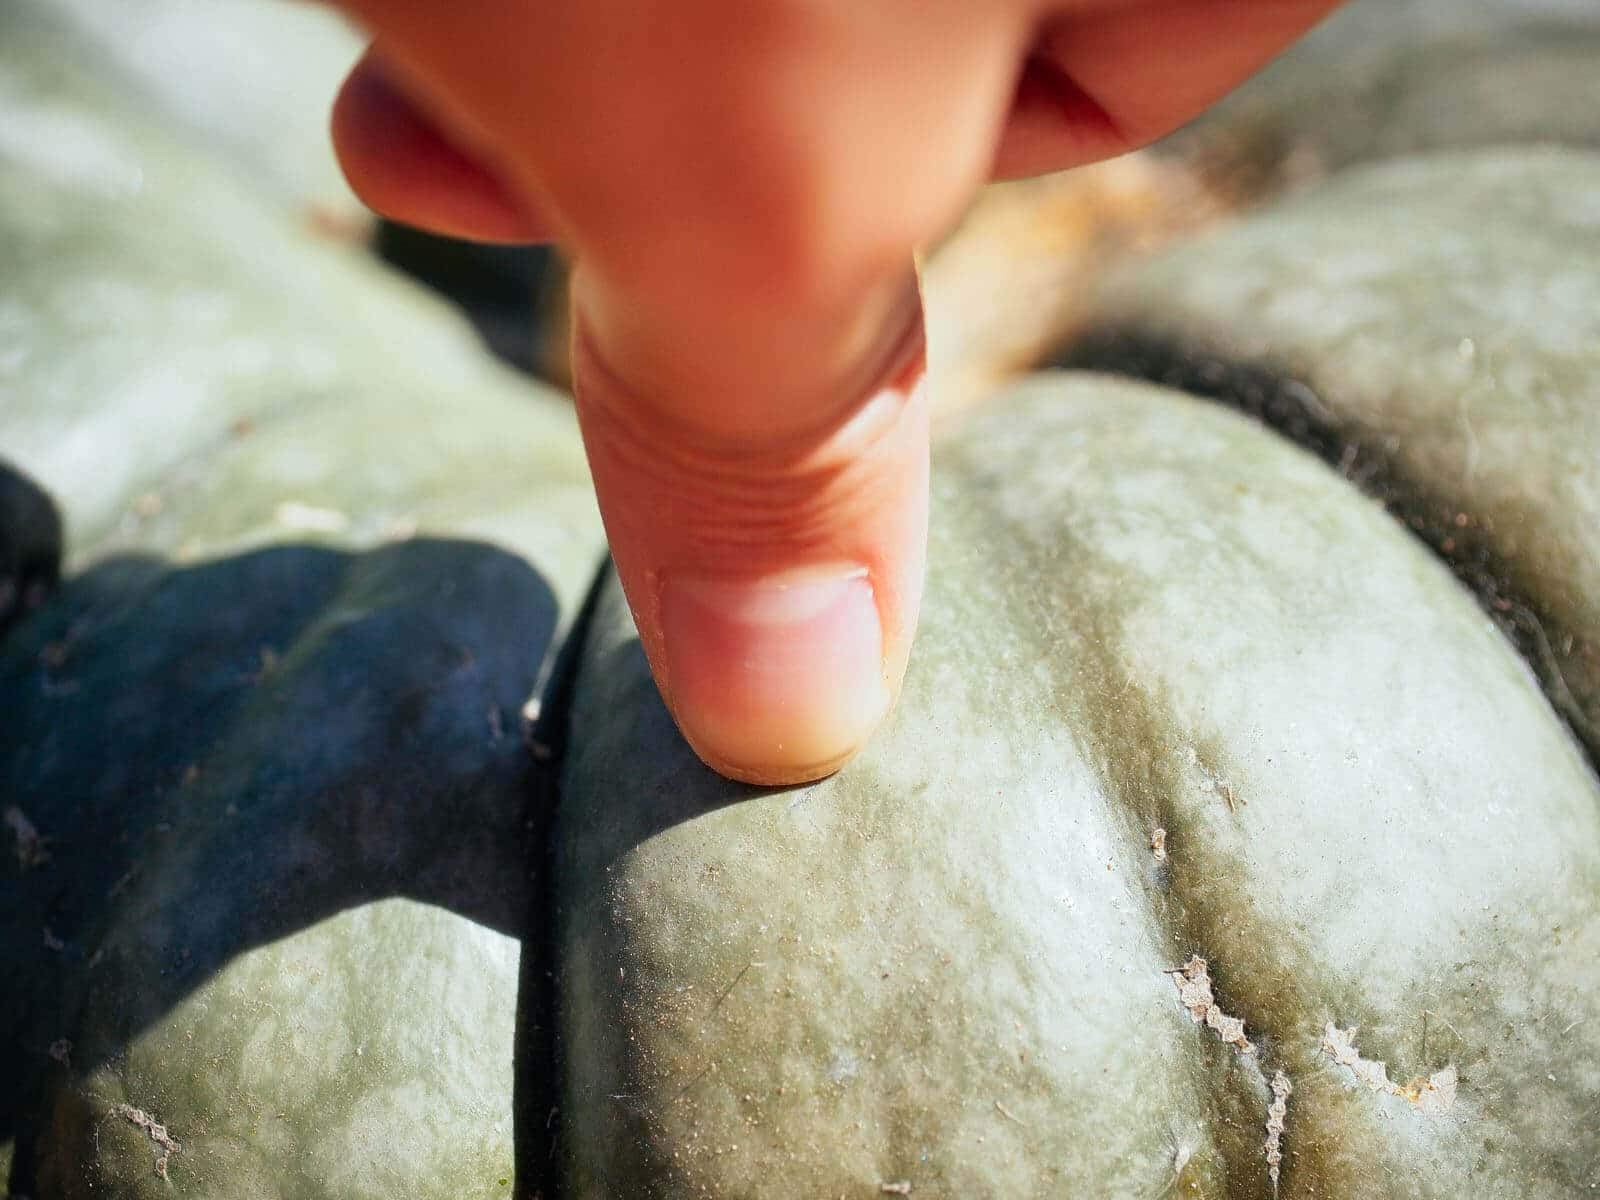 Test the rind's toughness with your fingernail